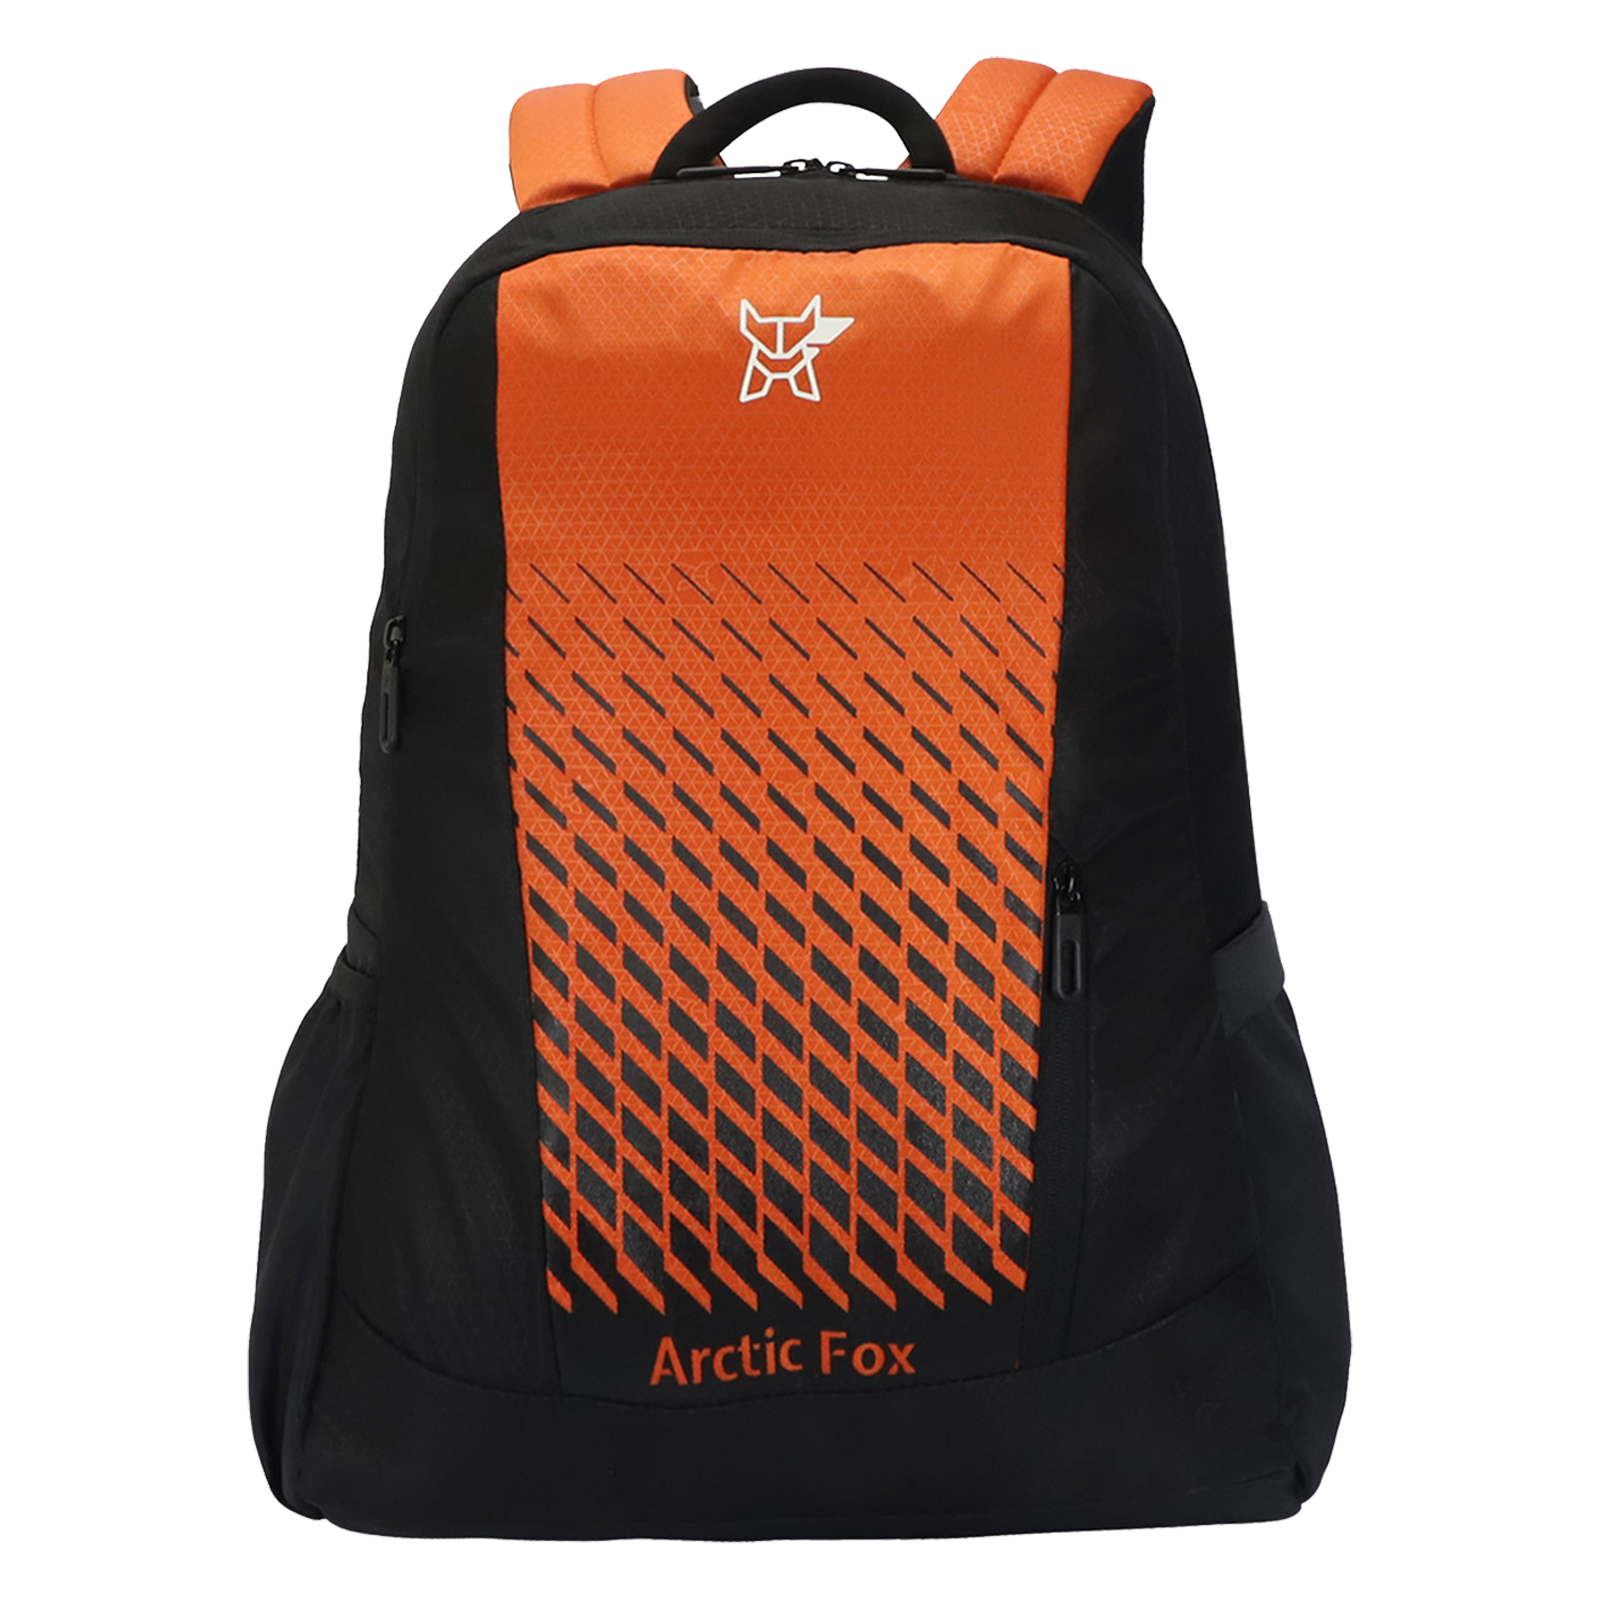 Arctic Fox Grill 28.5 Litres PU Coated Polyester Backpack (2 Spacious Compartments, FTEBPKRORON061029, Red Orange)_1